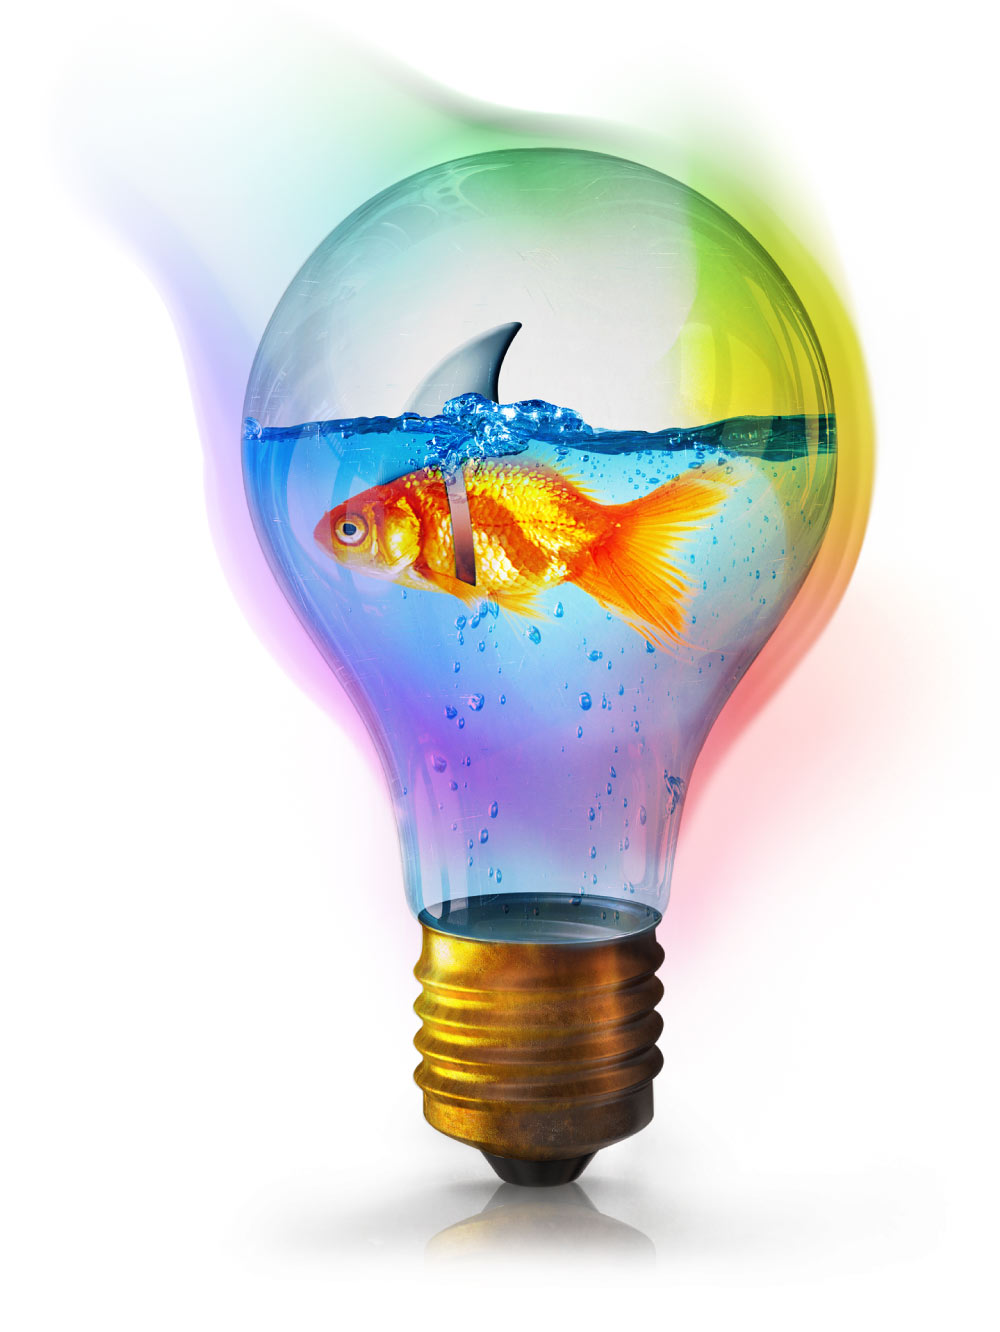 Goldfish in a Lightbulb With a Shark Fin